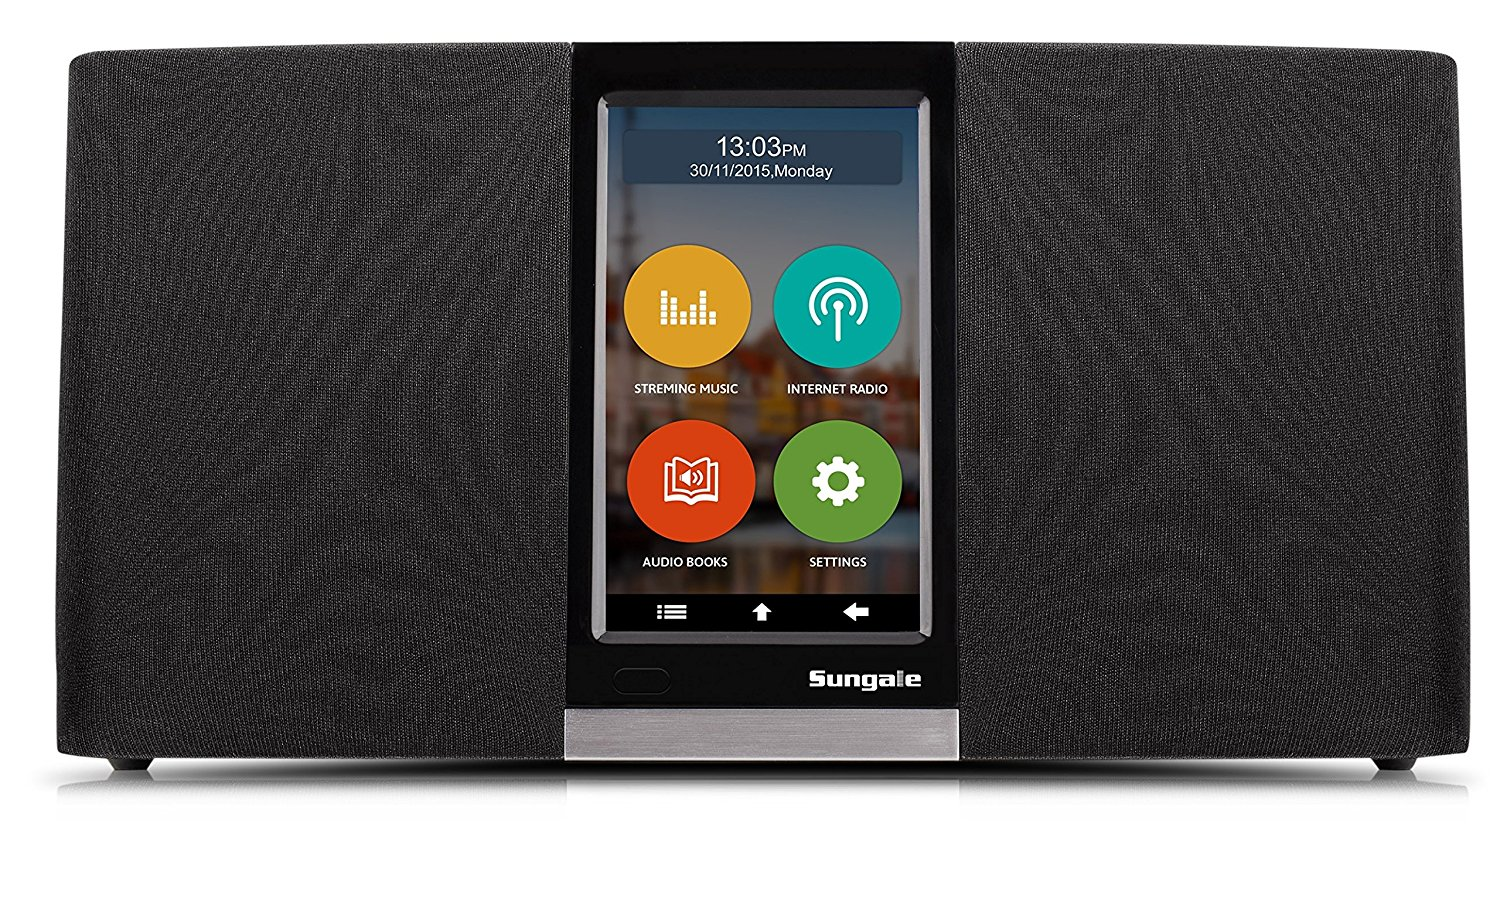 Sungale Wi-Fi Internet Radio with User Friendly Touchscreen Navigation